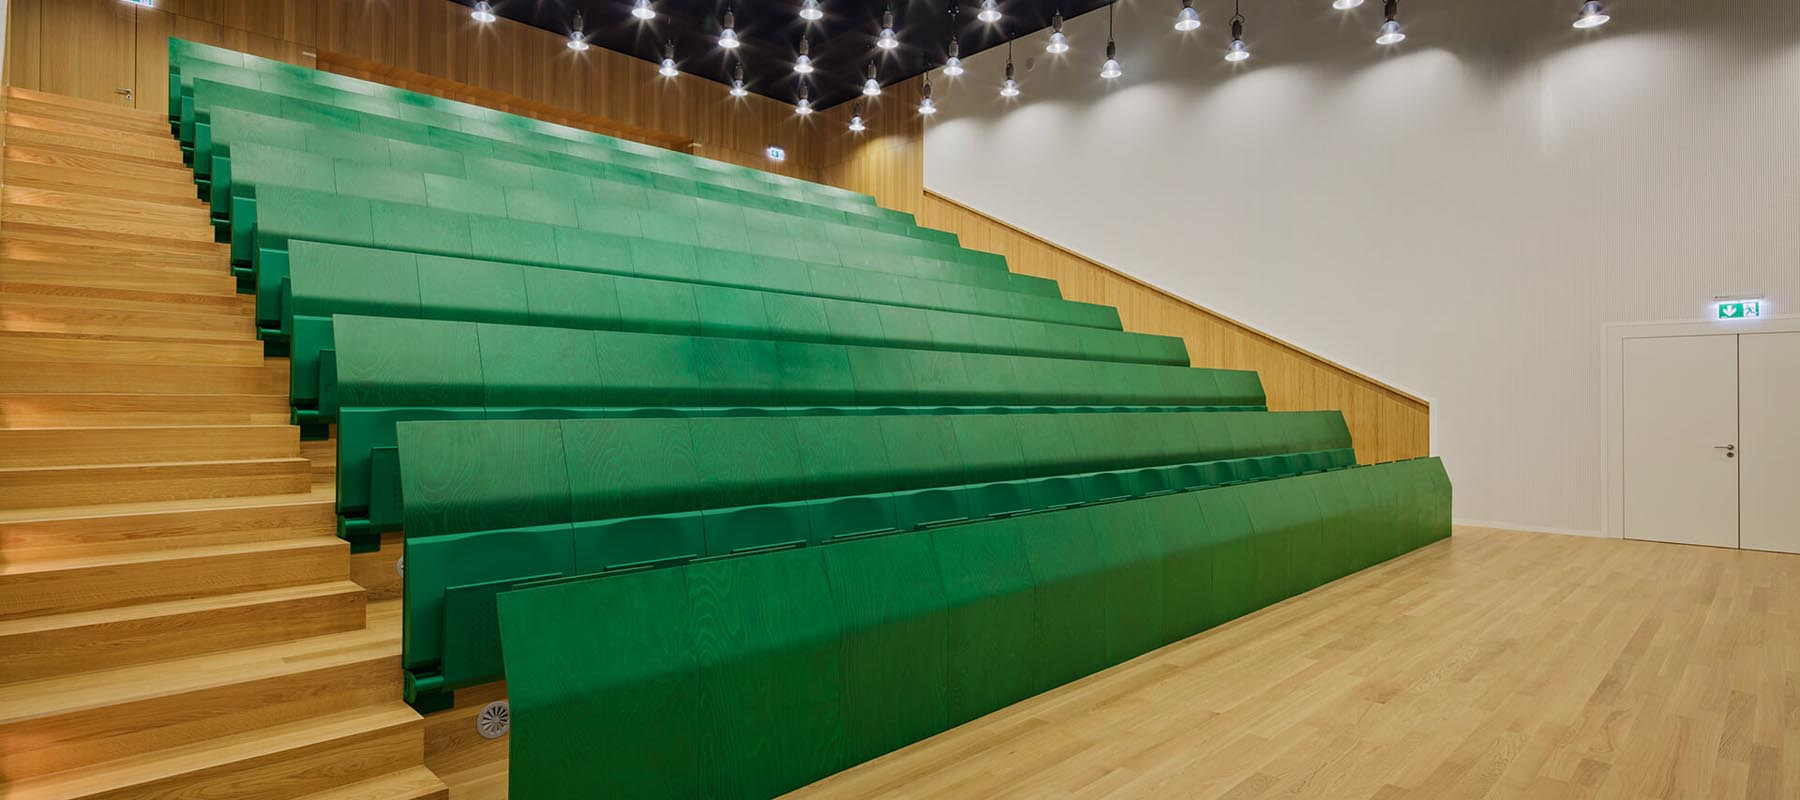 LAMM Lecture Theatre Seating | Woodwood Group